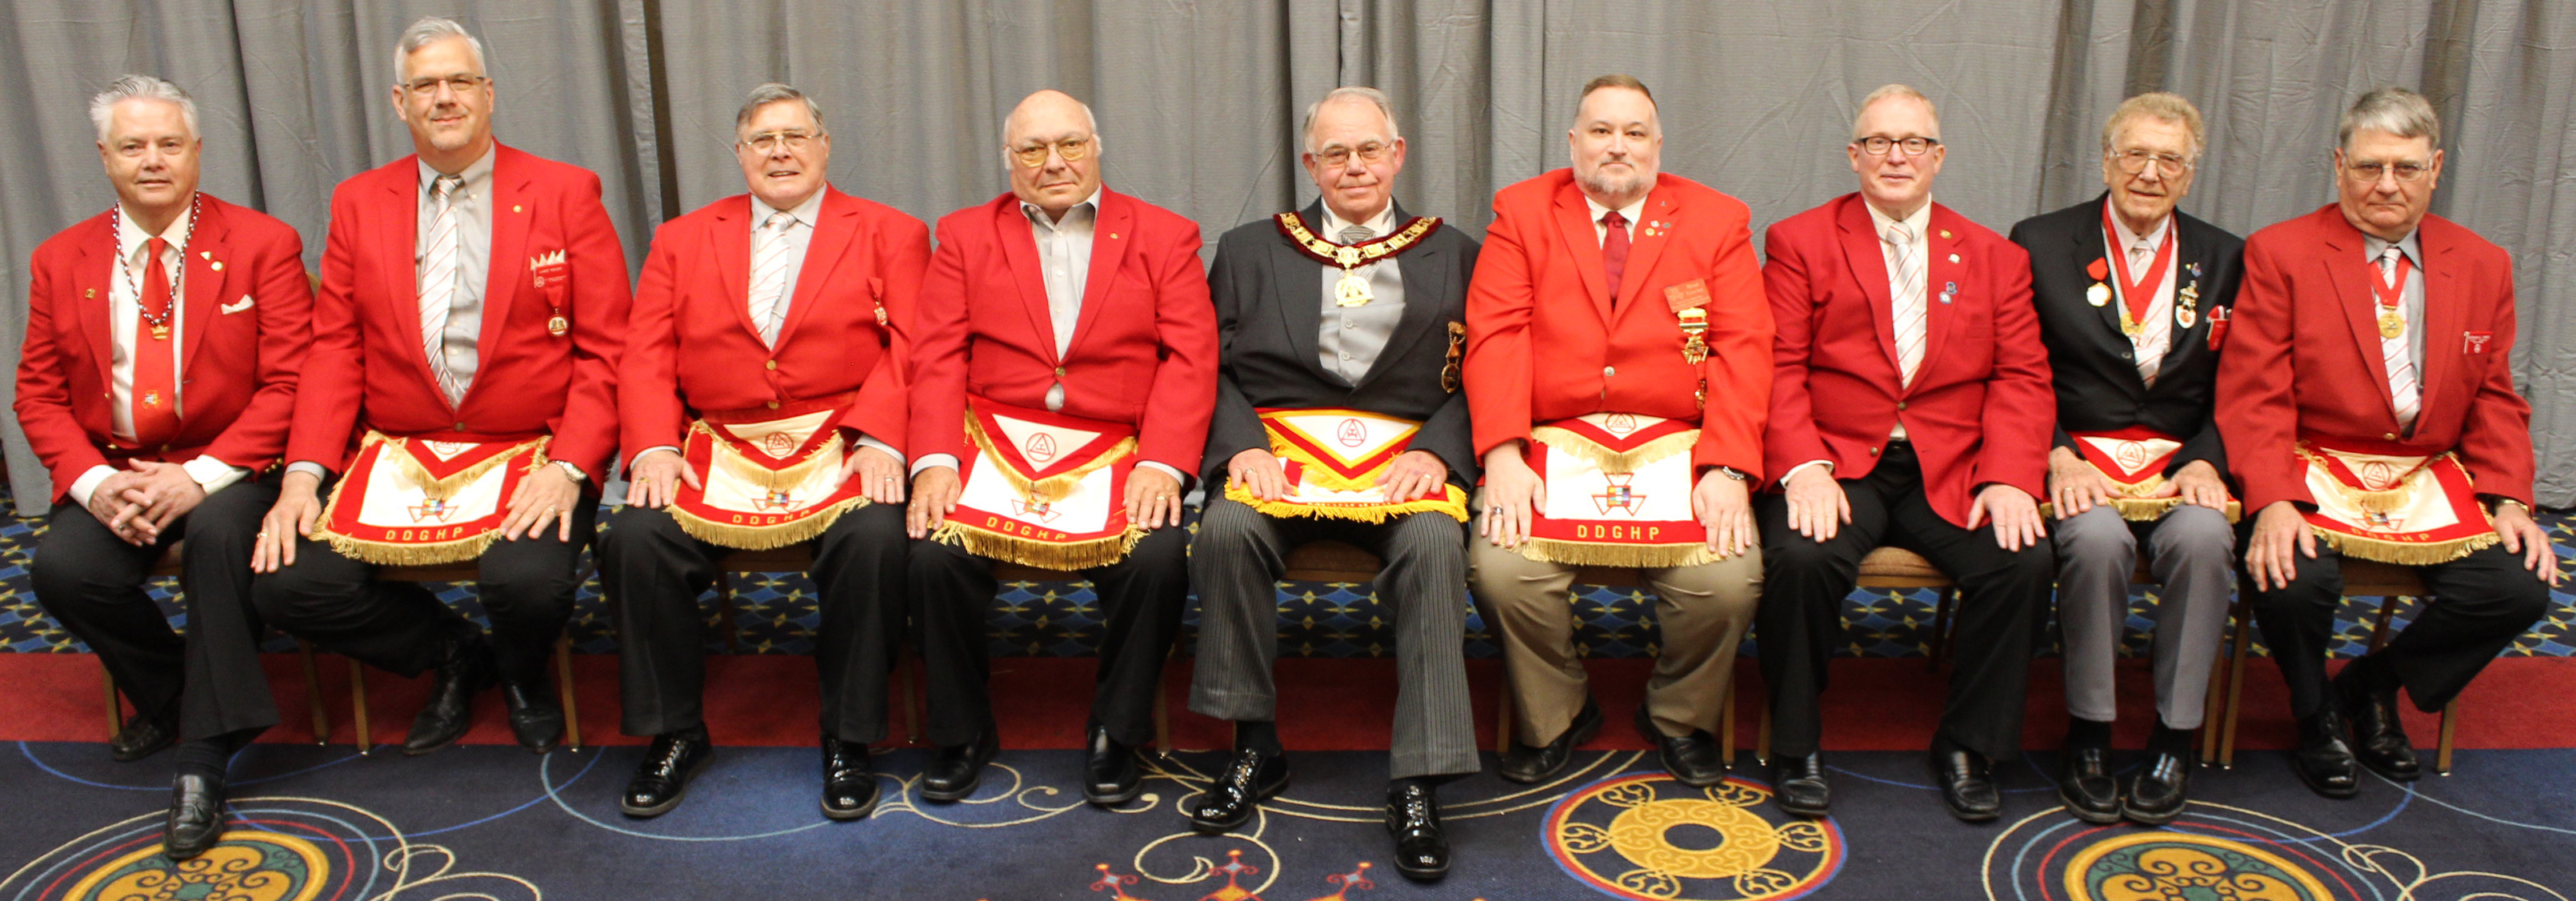 2019 Grand Chapter District Deputy Grand High Priests